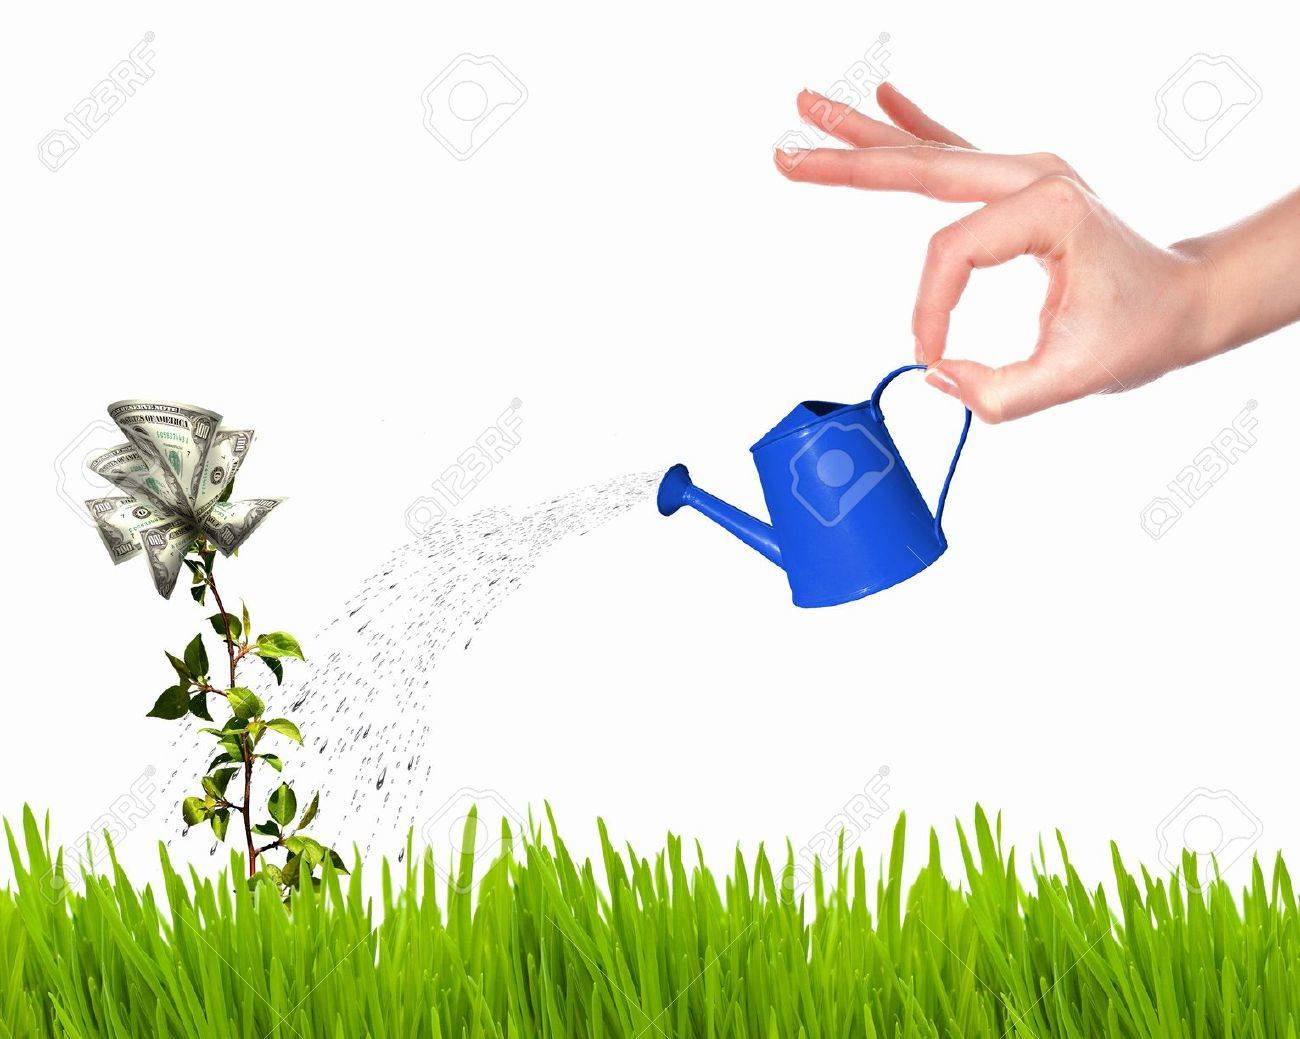 Human hand with a pot watering growing money tree Stock Photo - 12404405